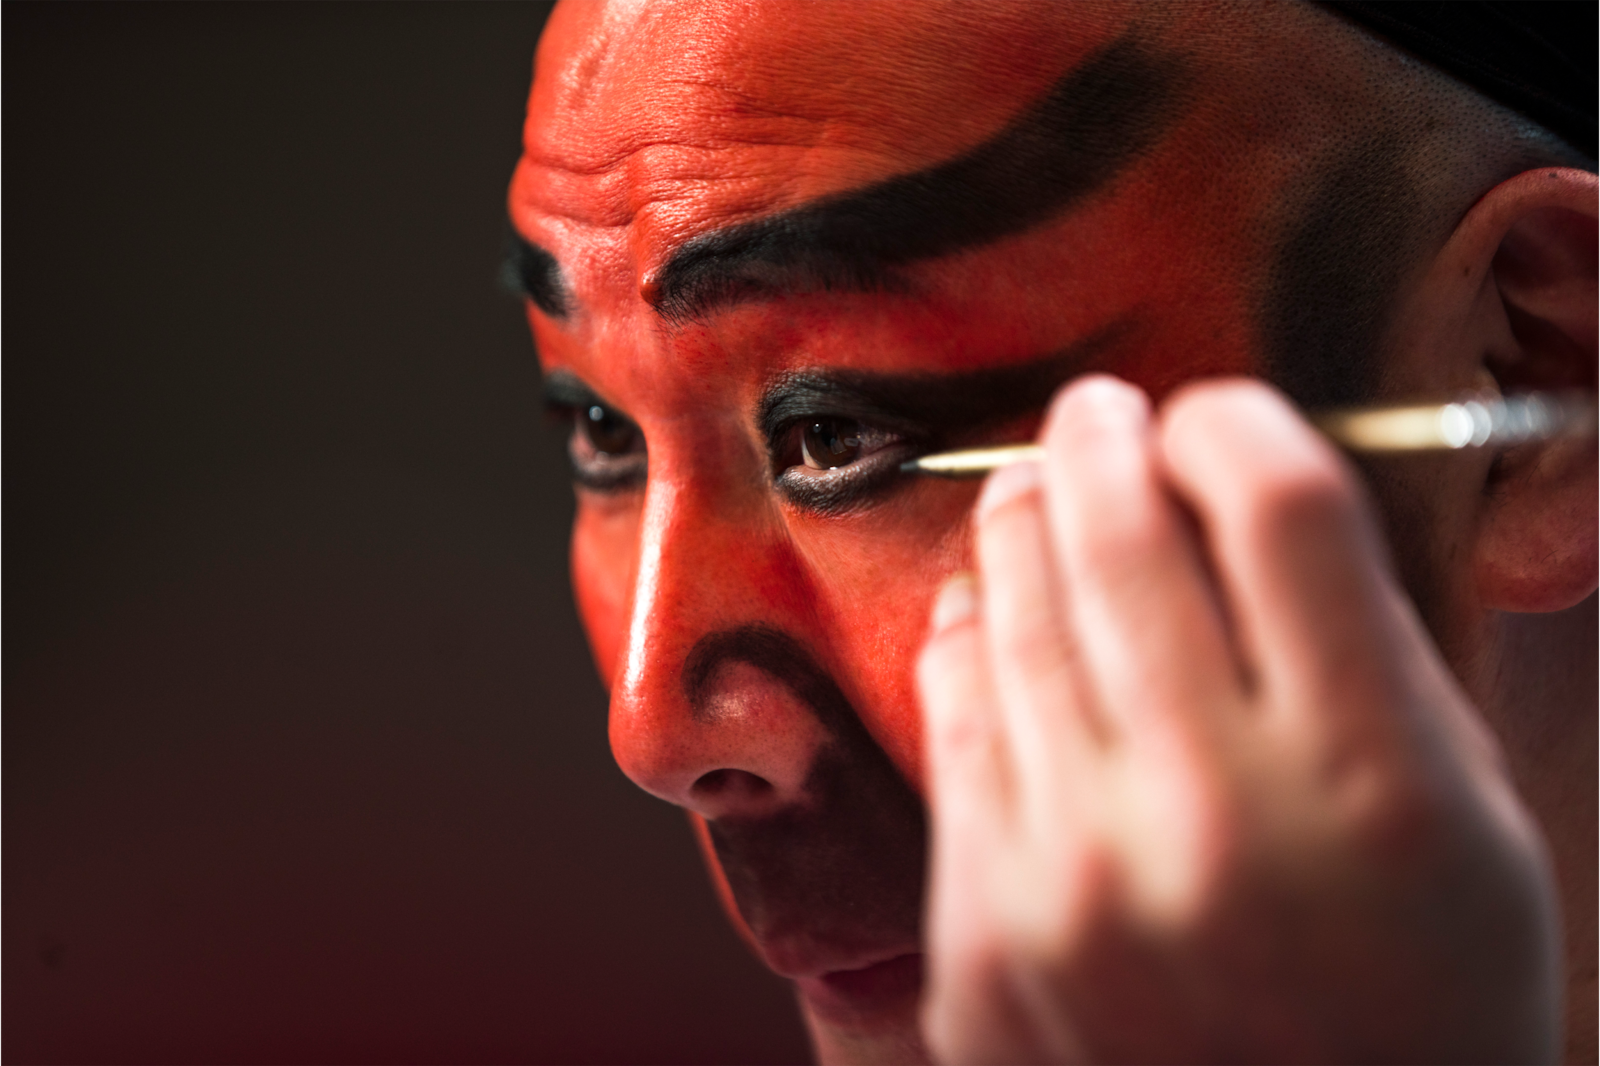 male performer in red face paint applying makeup alpha 7RII